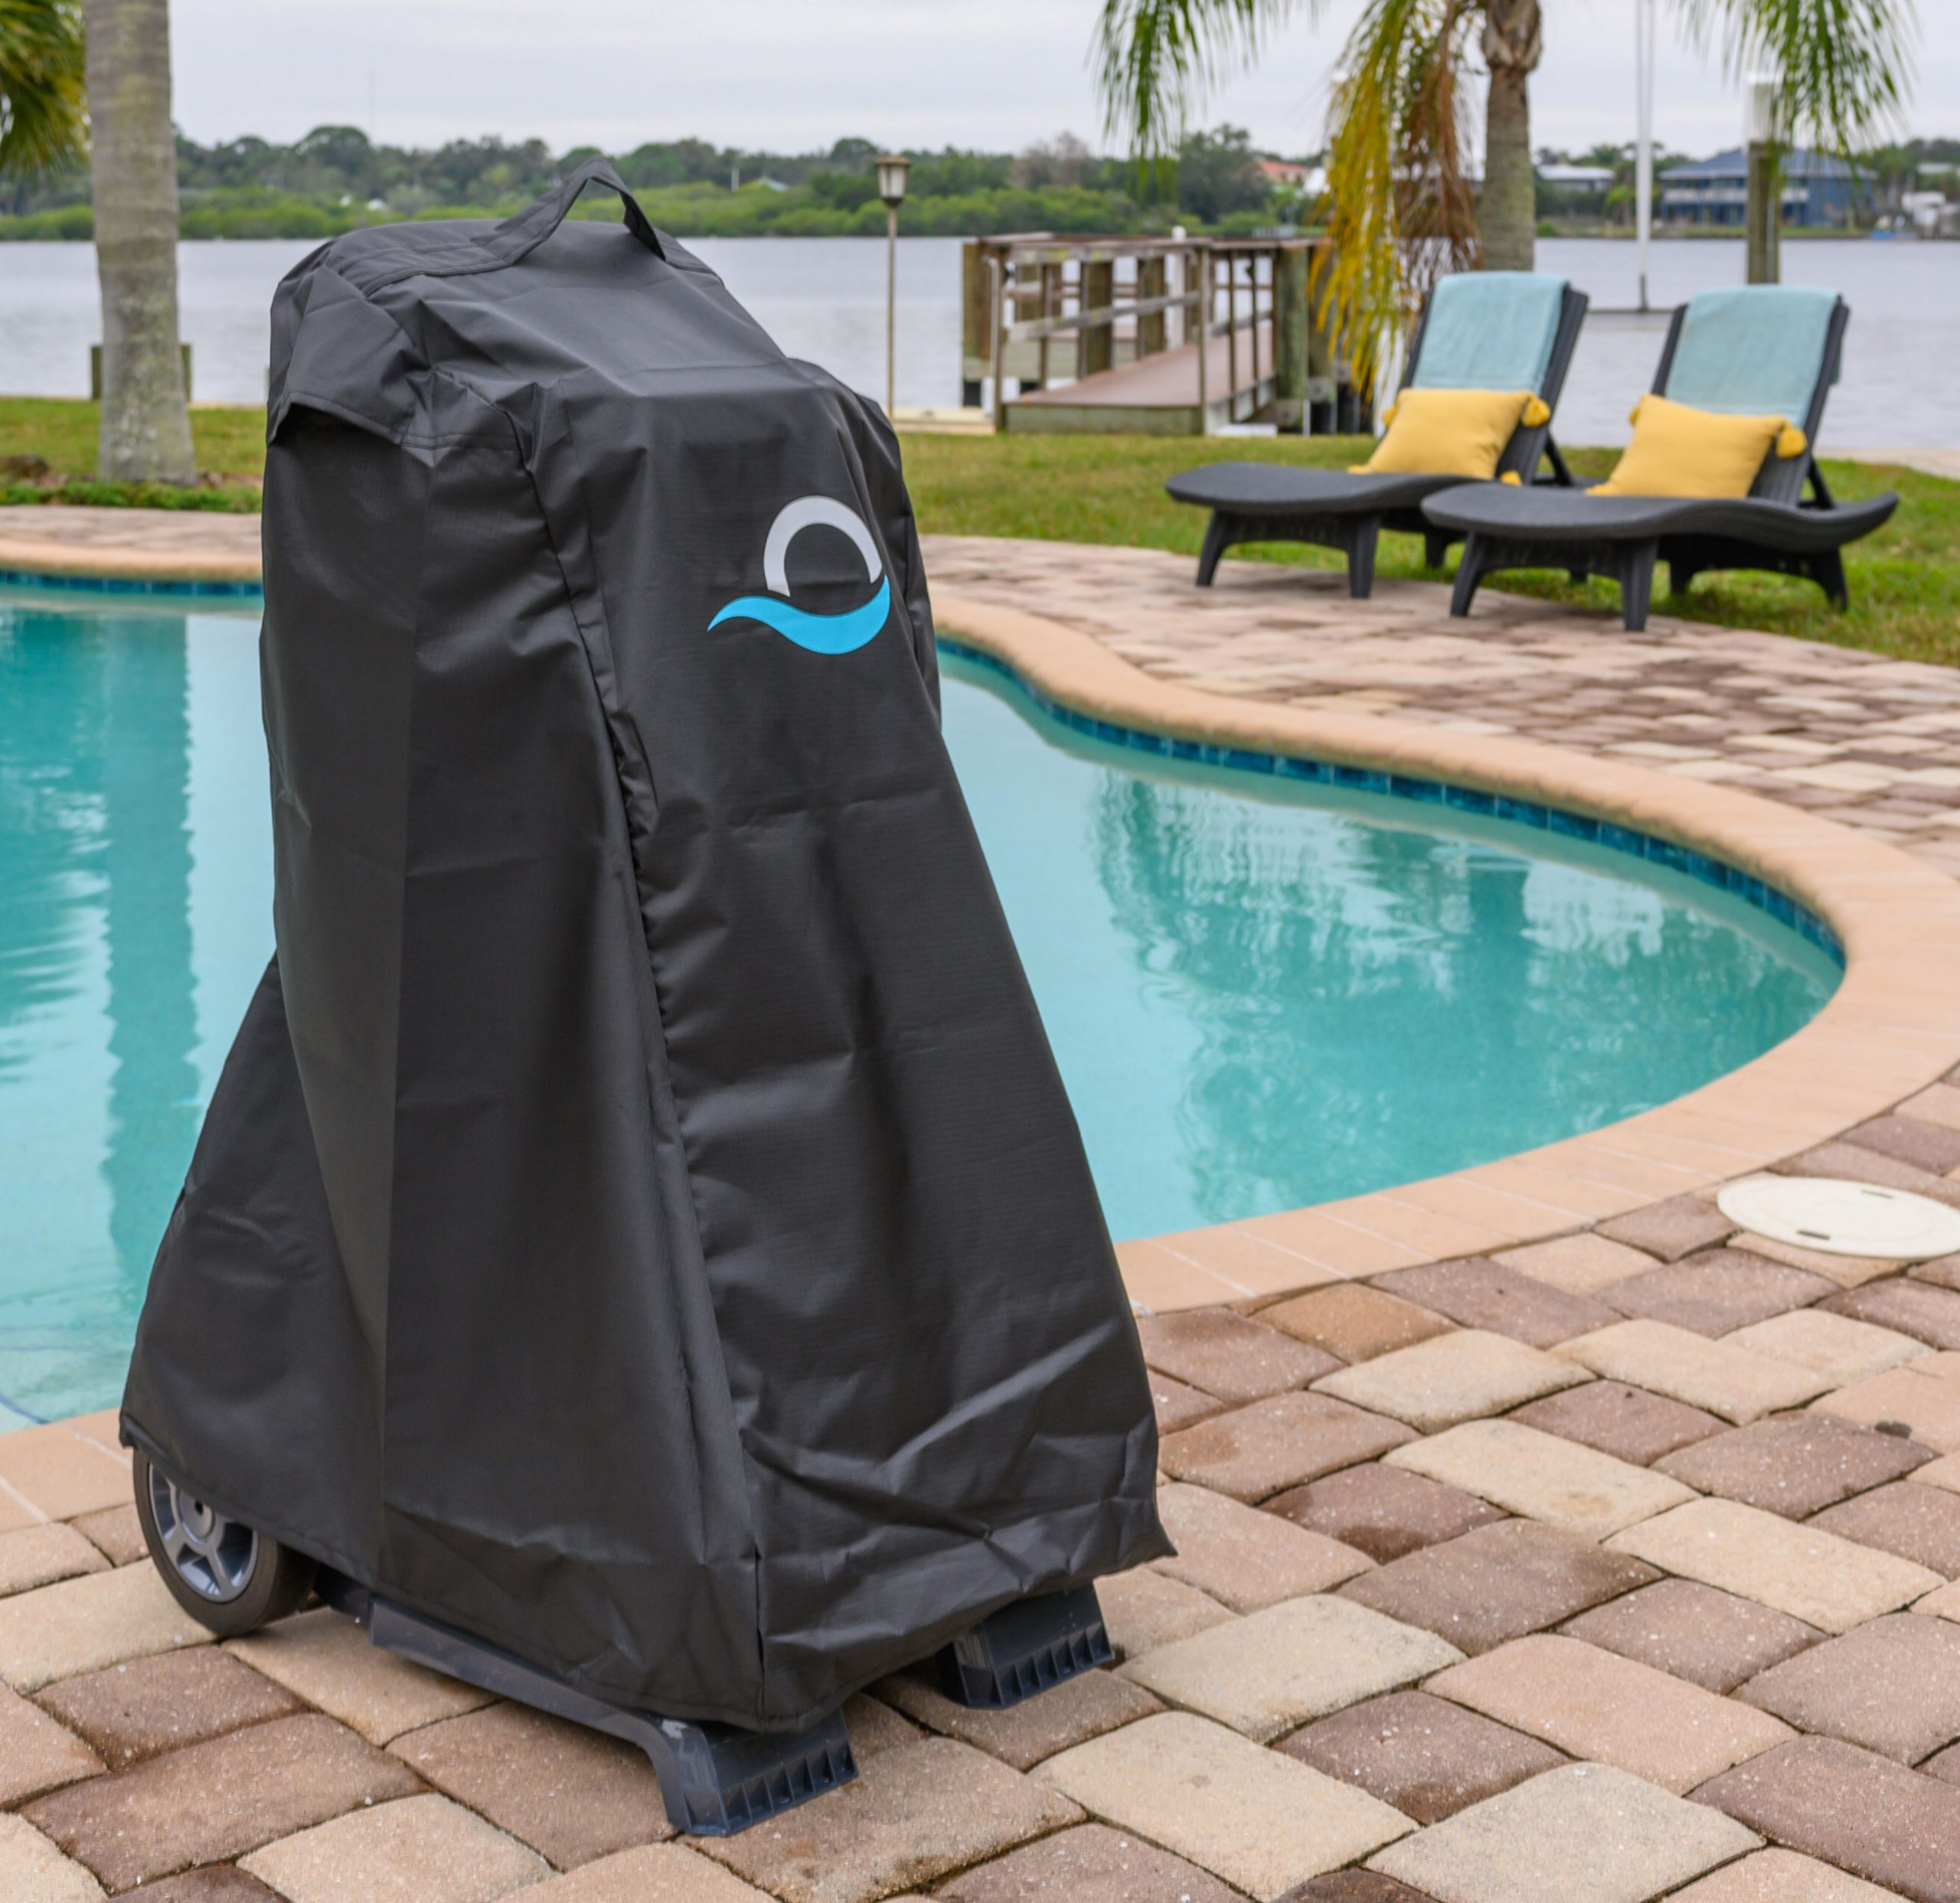 Dolphin Robotic Pool Cleaner Caddy Cover